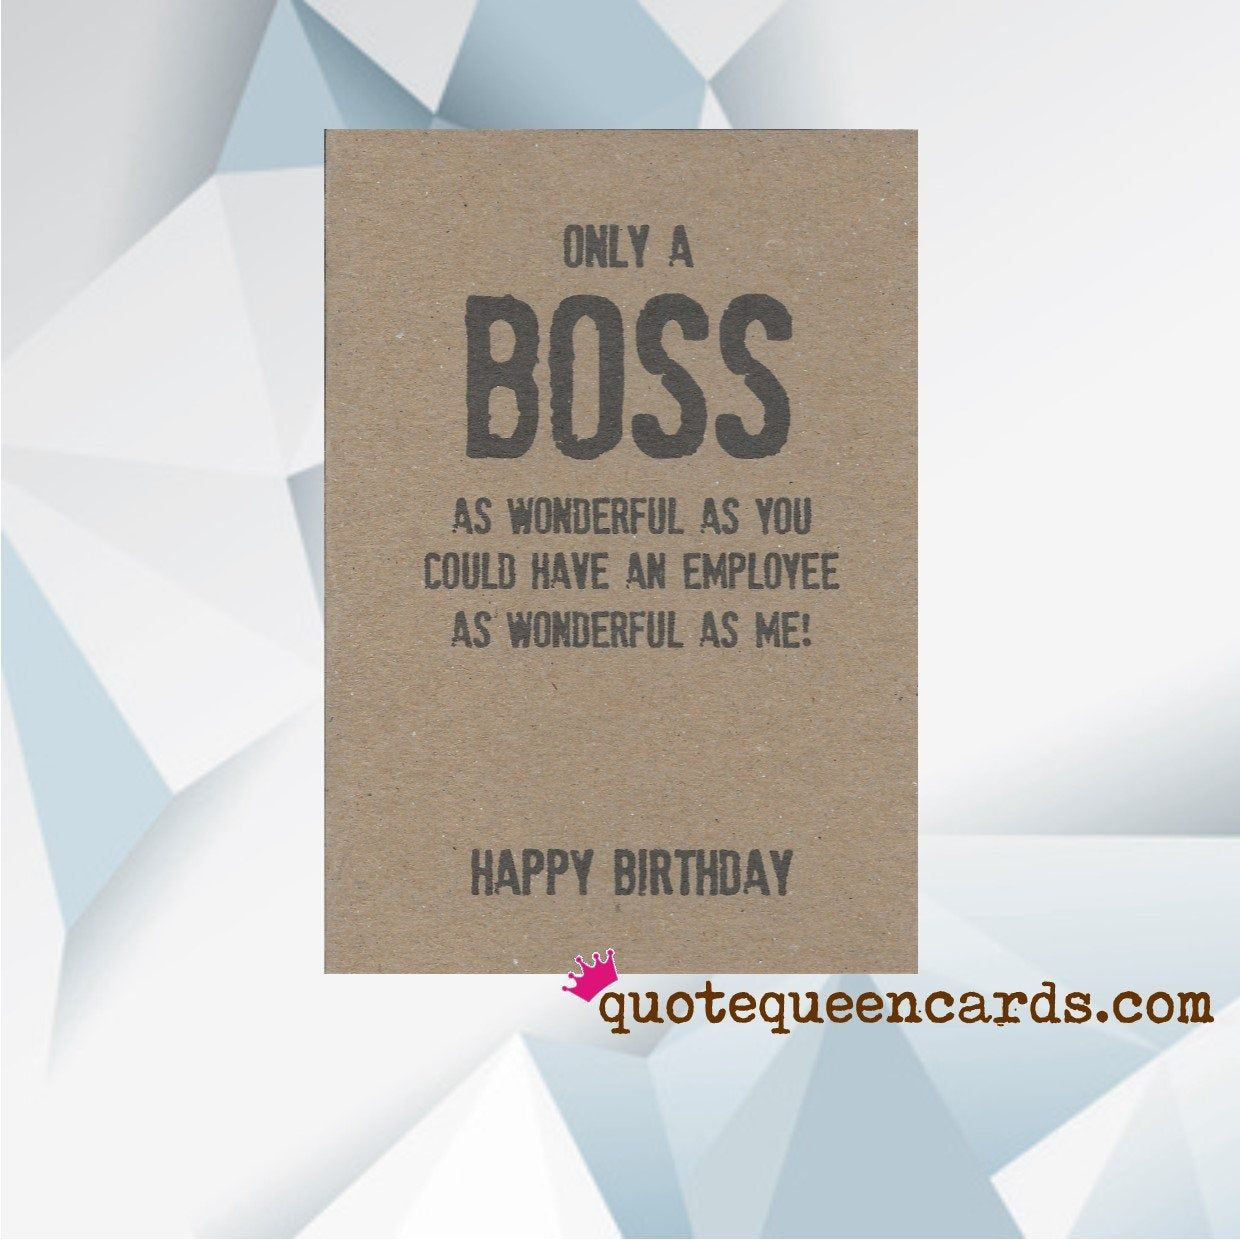 Funny Birthday Card For Boss , More Designs At QUOTE QUEEN CARDS Etsy Shop